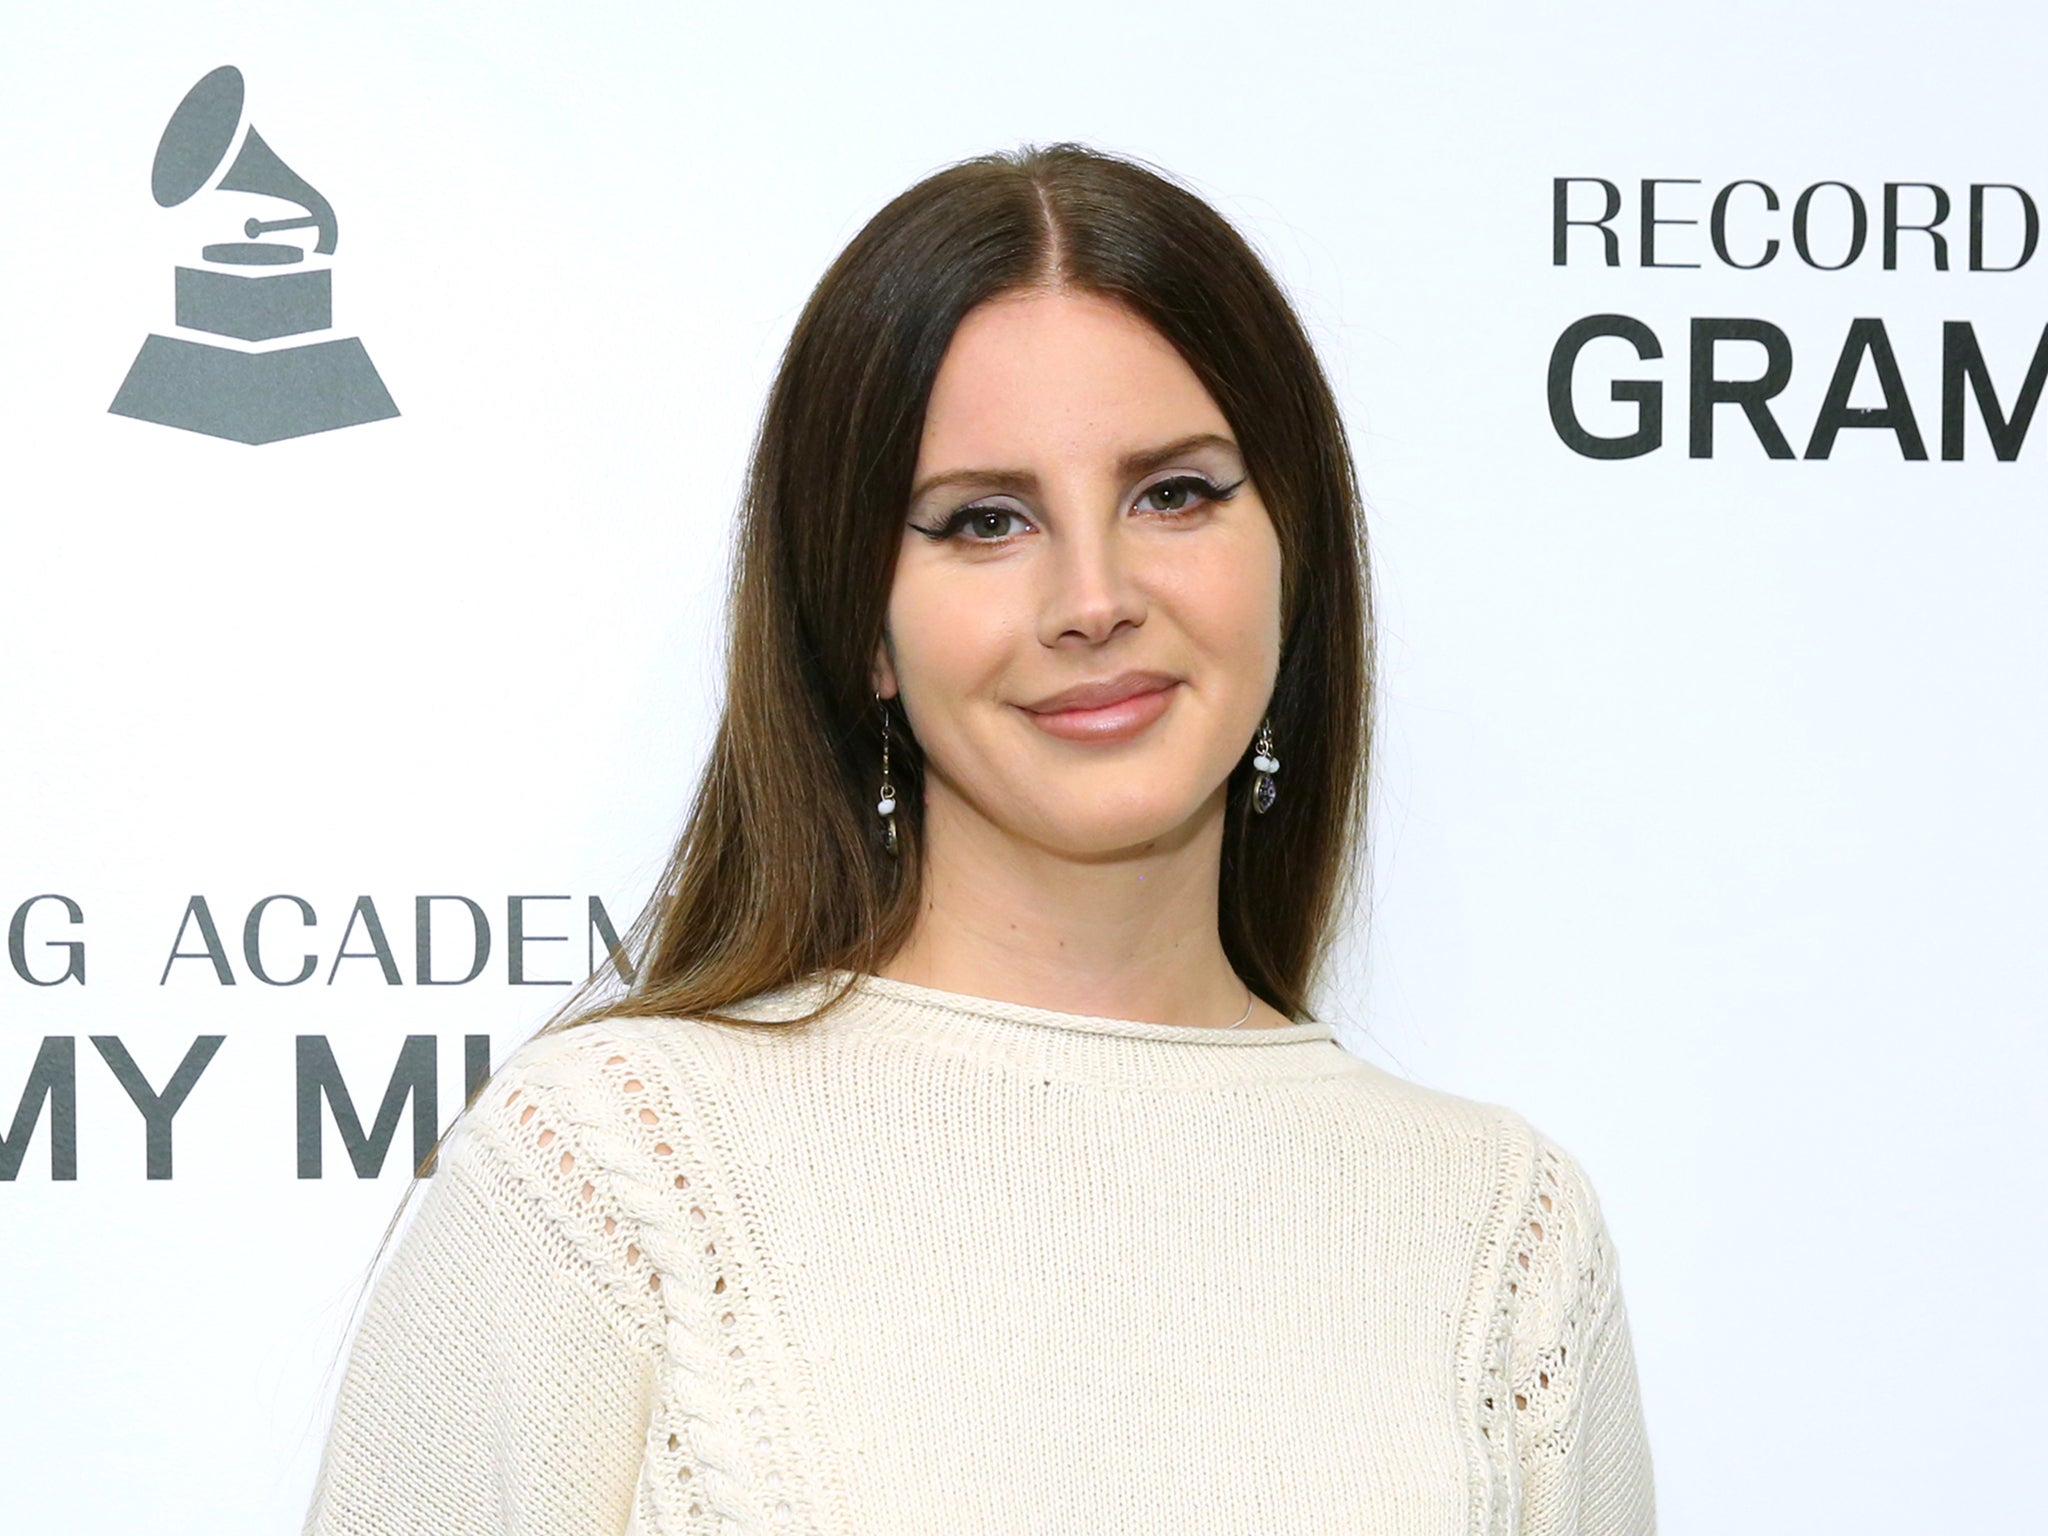 Lana Del Rey clarifies comments around Donald Trump, accuses music media of taking quotes 'out of context'